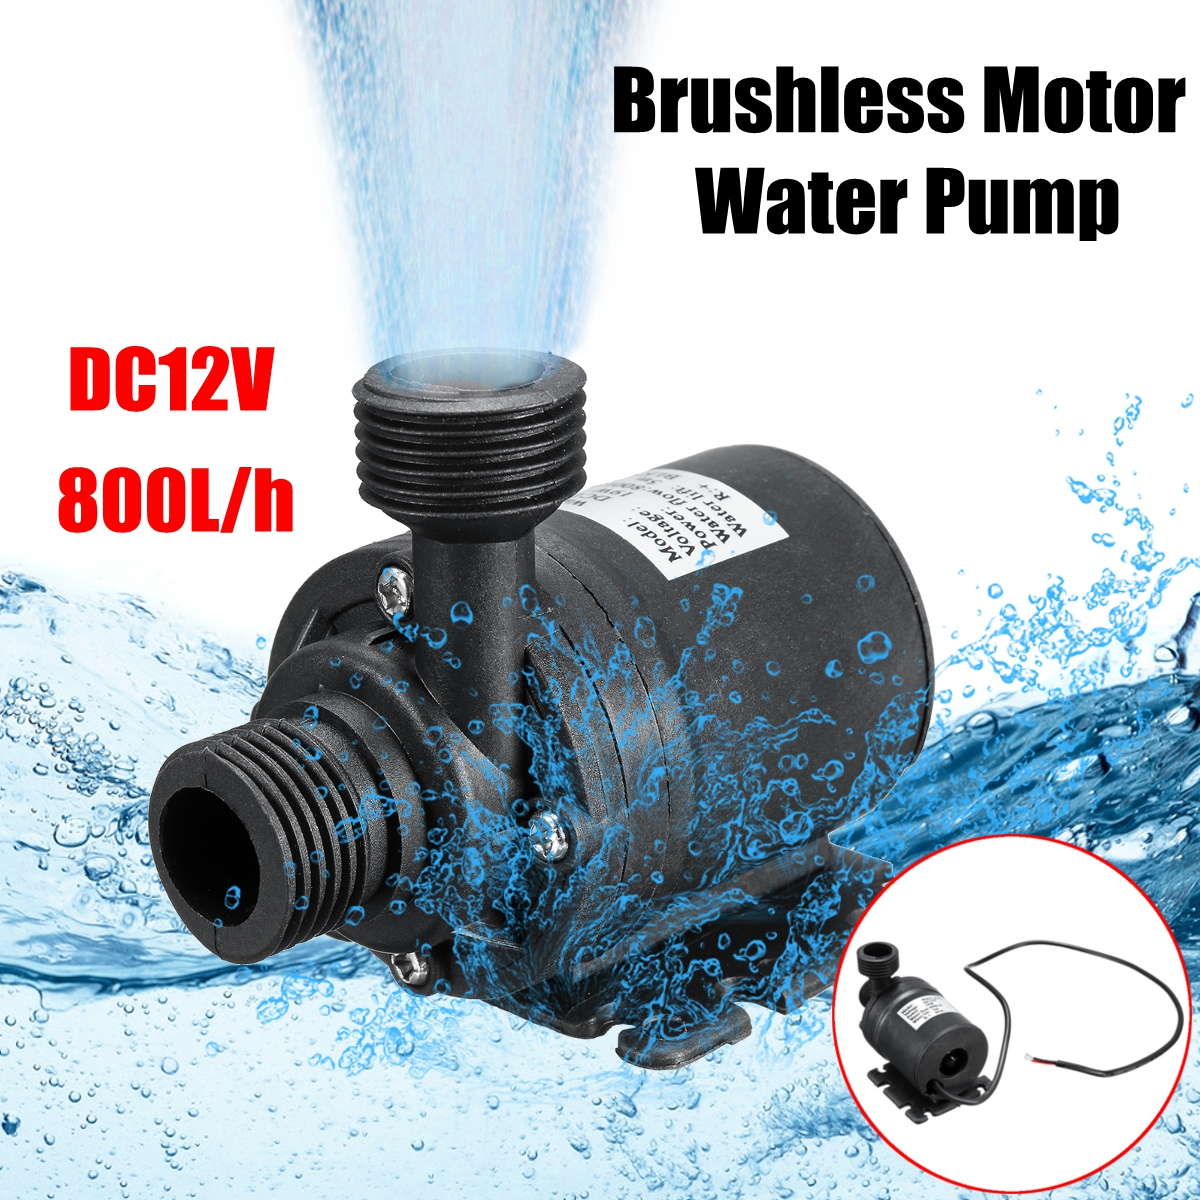 Waterproof DC 12V 5M 800L/H Portable Mini Brushless Motor Ultra-quiet Submersible Water Pump for Cooling System Fountains HeaterWaterproof DC 12V 5M 800L/H Portable Mini Brushless Motor Ultra-quiet Submersible Water Pump for Cooling System Fountains Heater